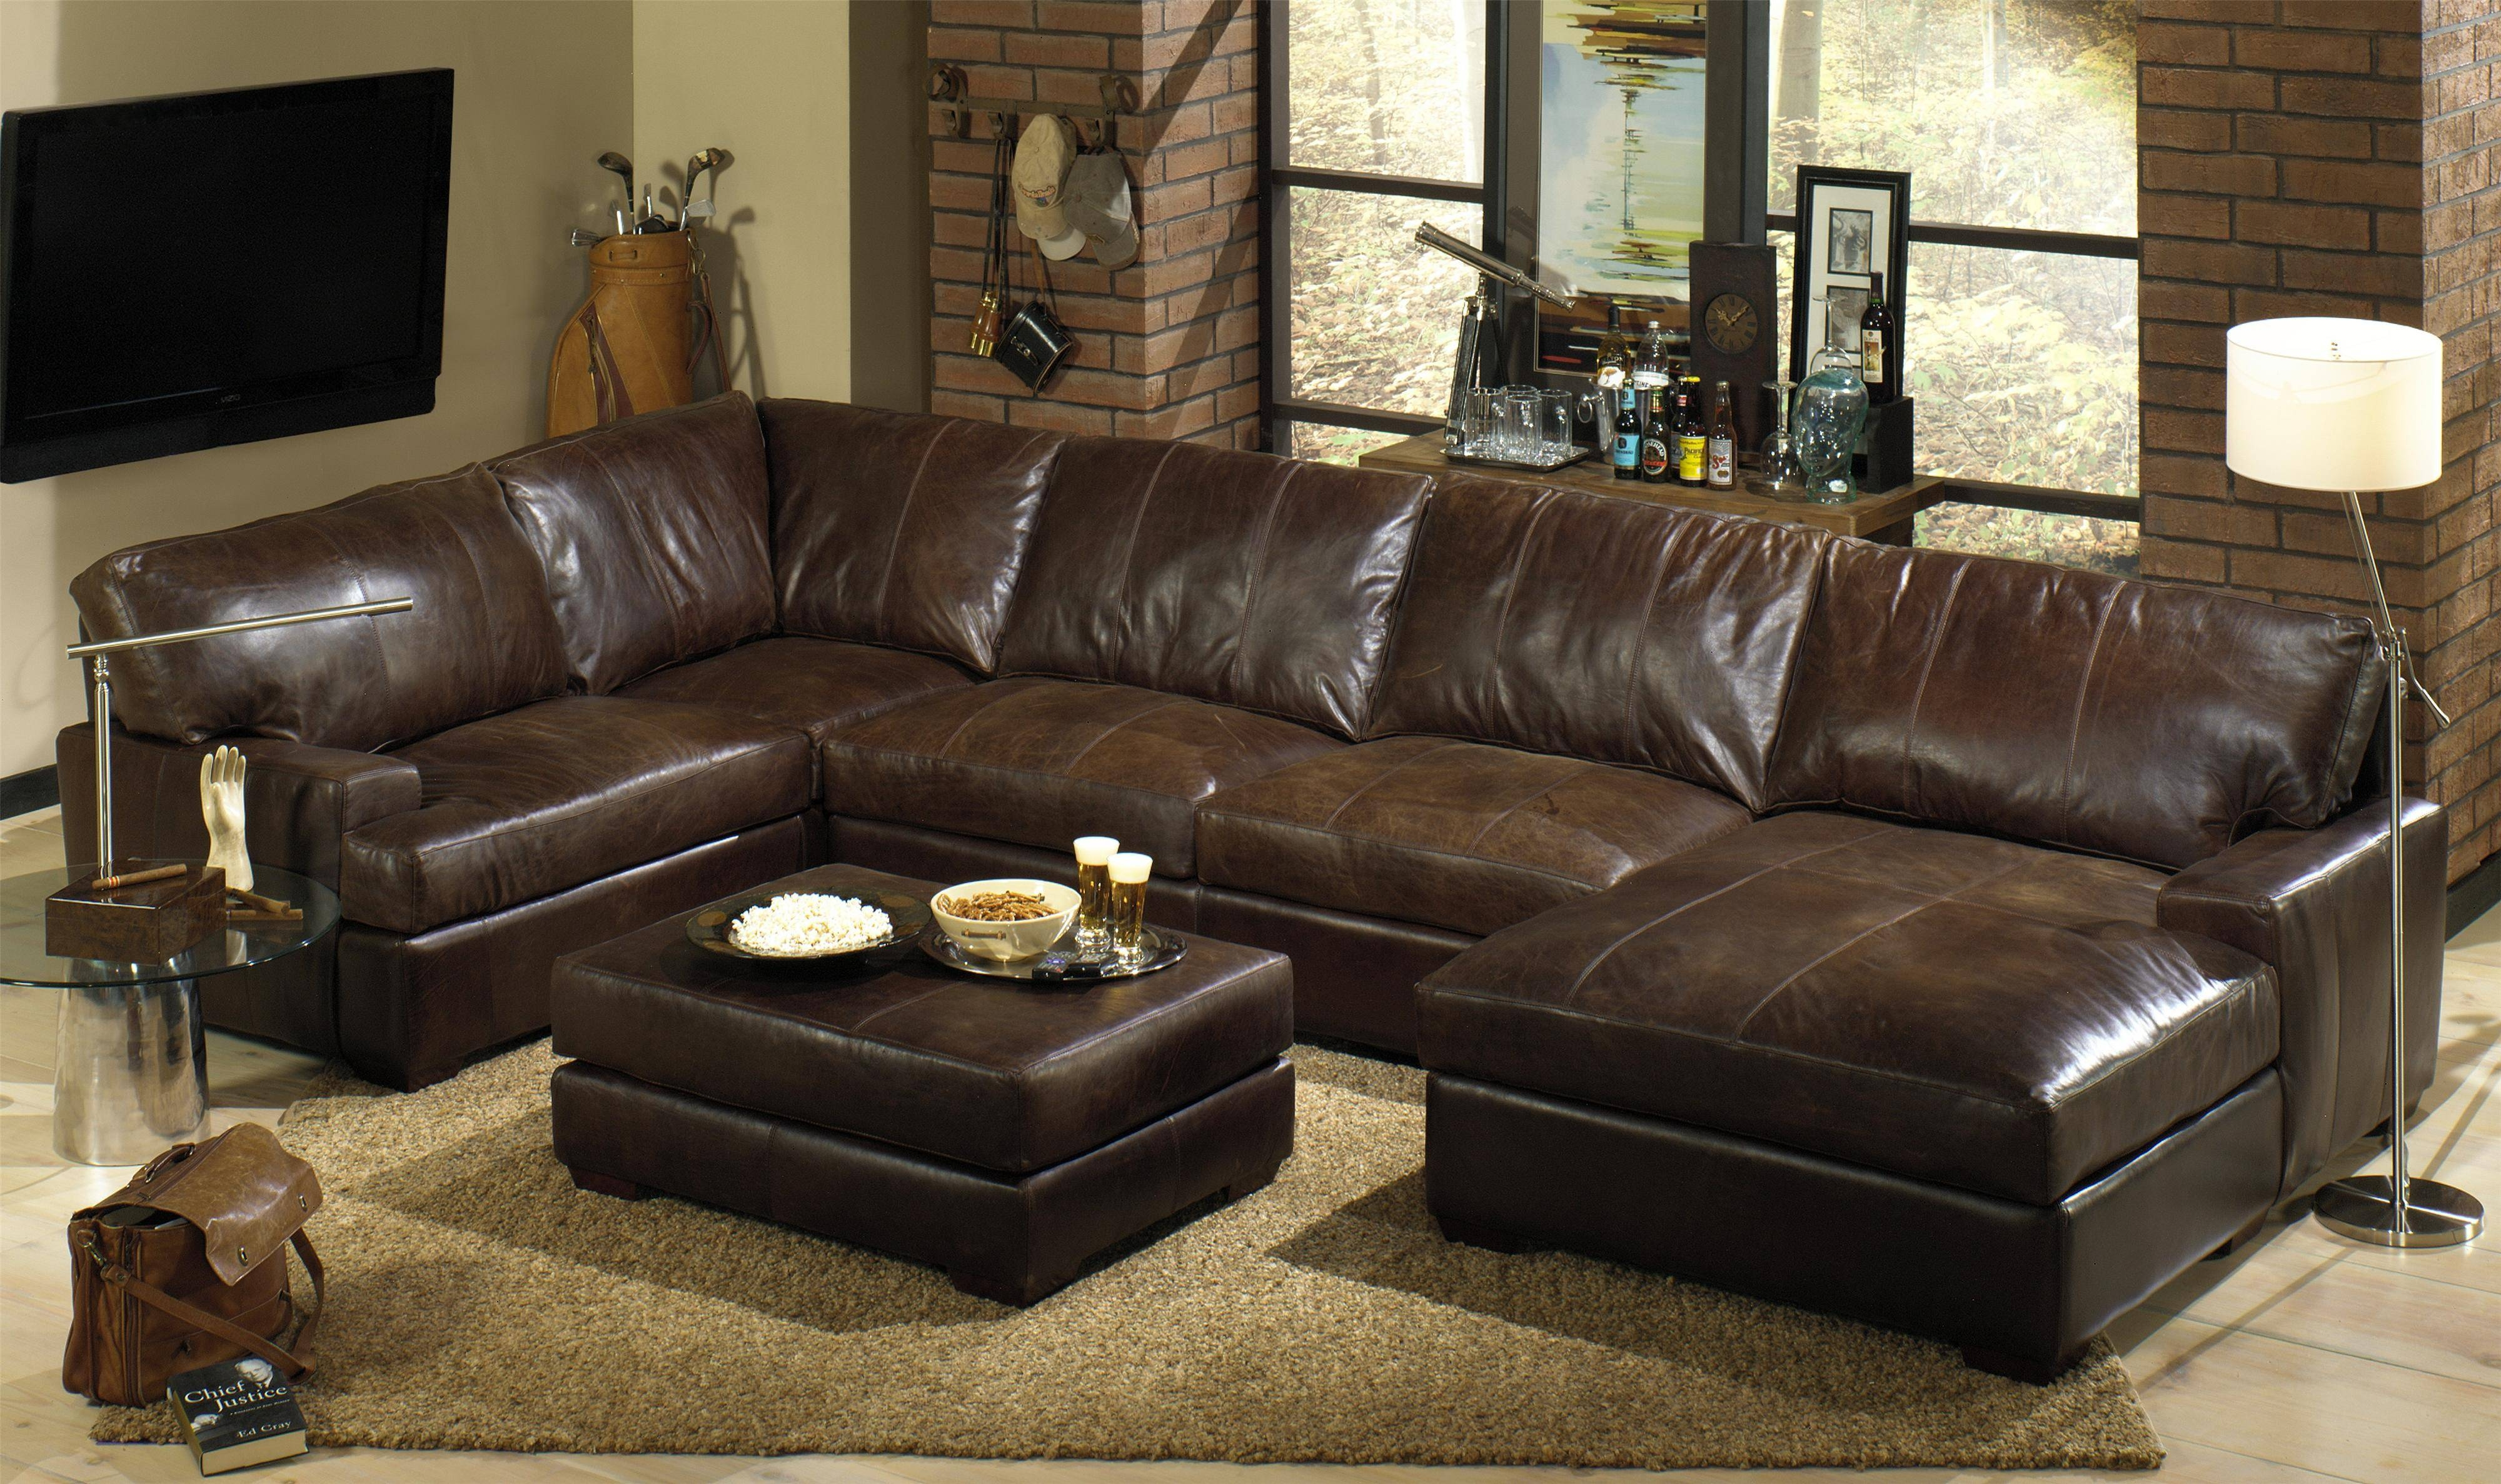 Charming 6 Piece Leather Sectional Sofa 41 On Sectional Leather within 10 Piece Sectional Sofa (Image 8 of 30)